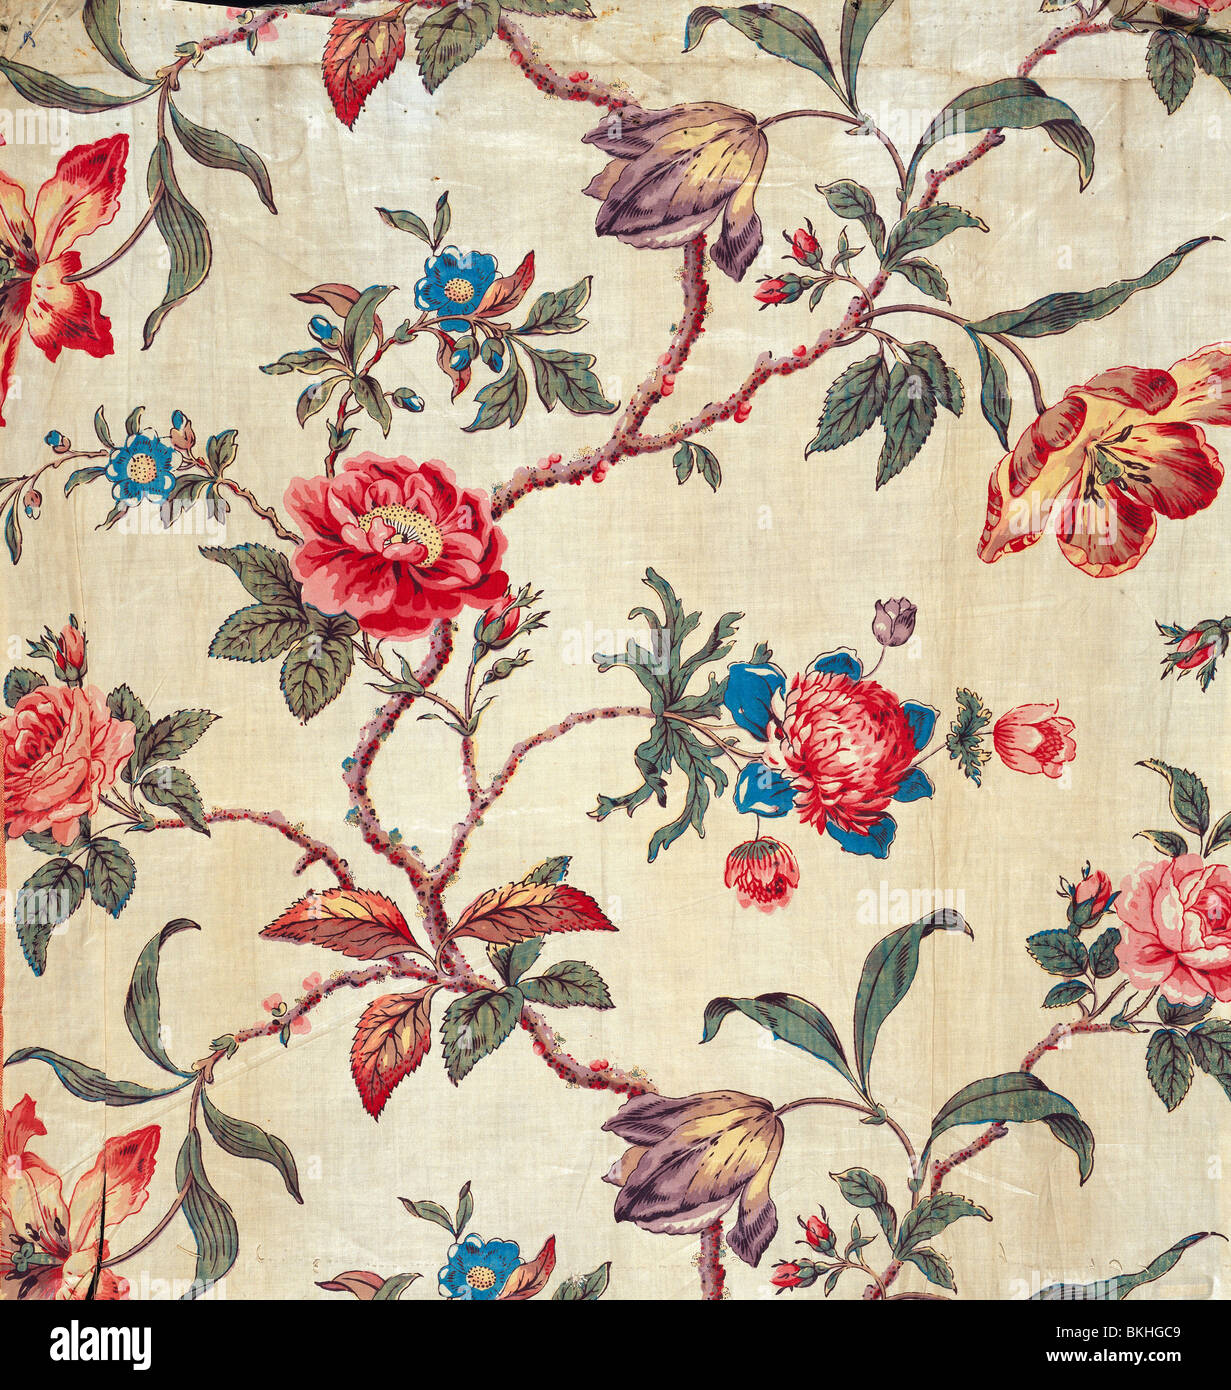 Floral pattern. England, mid-19th century - Stock Image